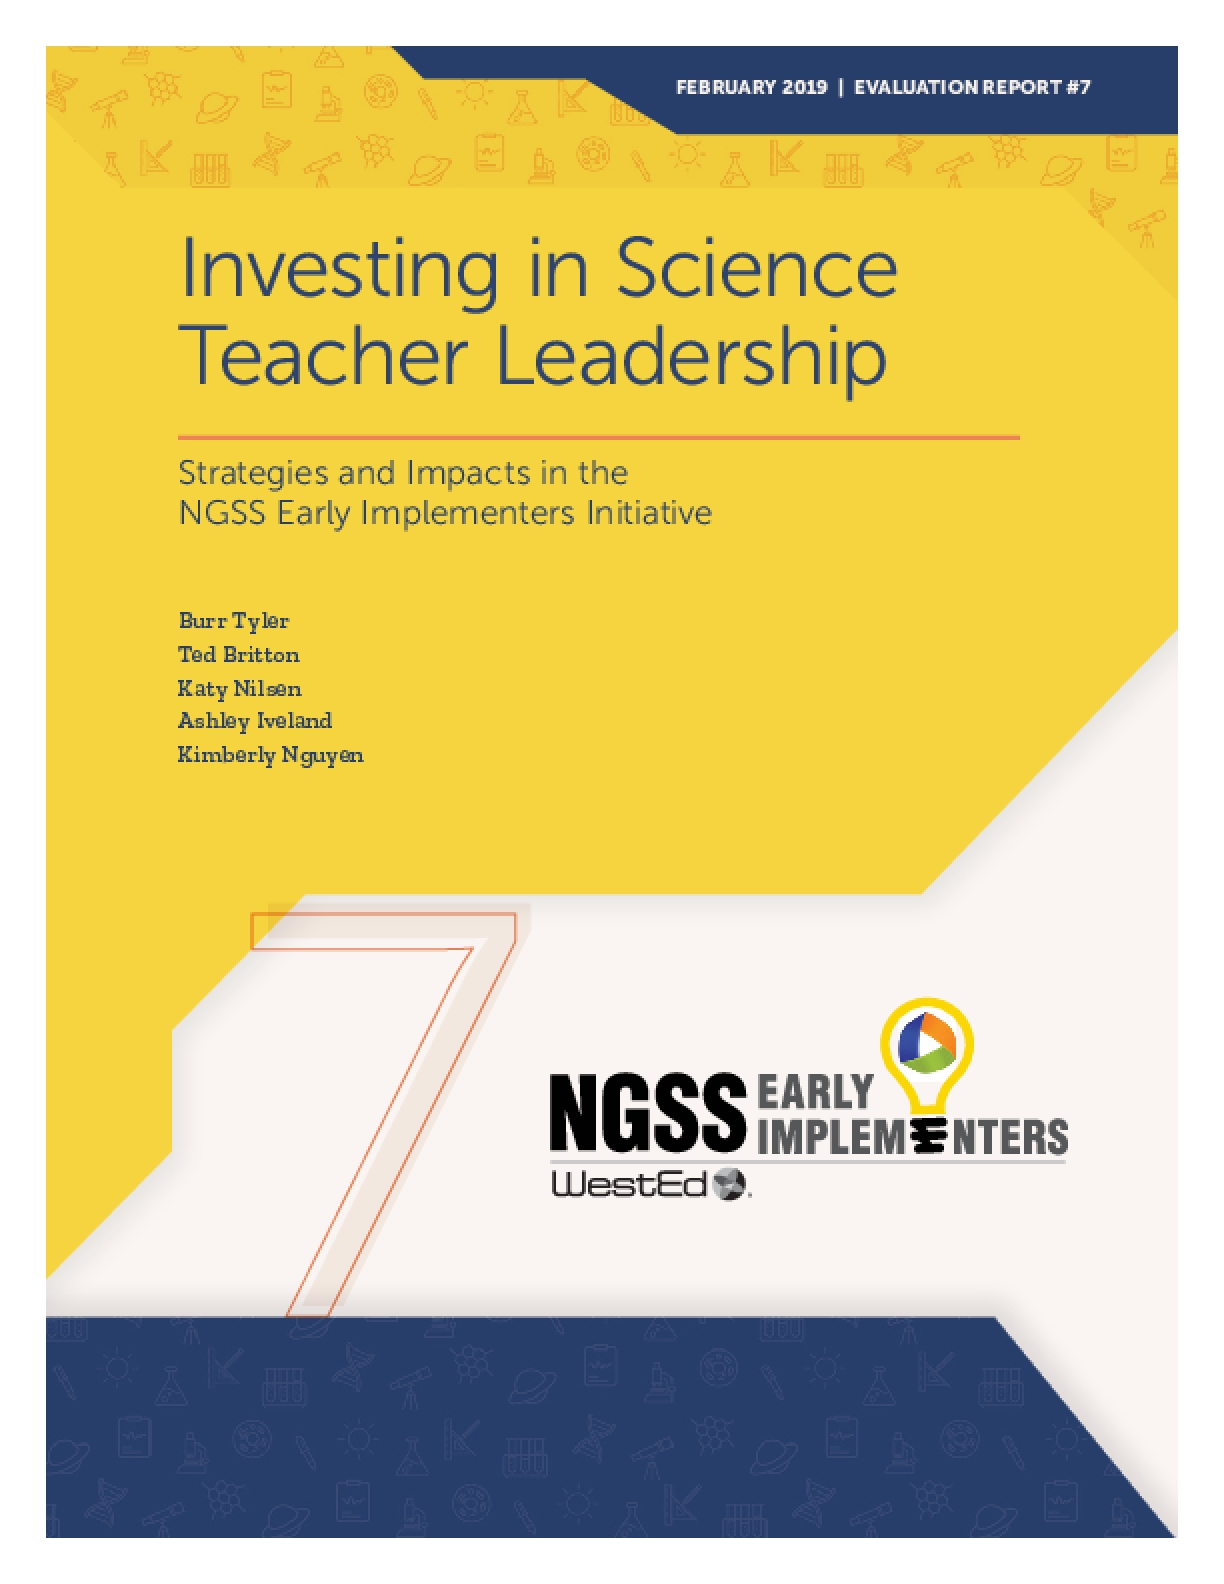 Investing in Science Teacher Leadership: Strategies and Impacts in the NGSS Early Implementers Initiative